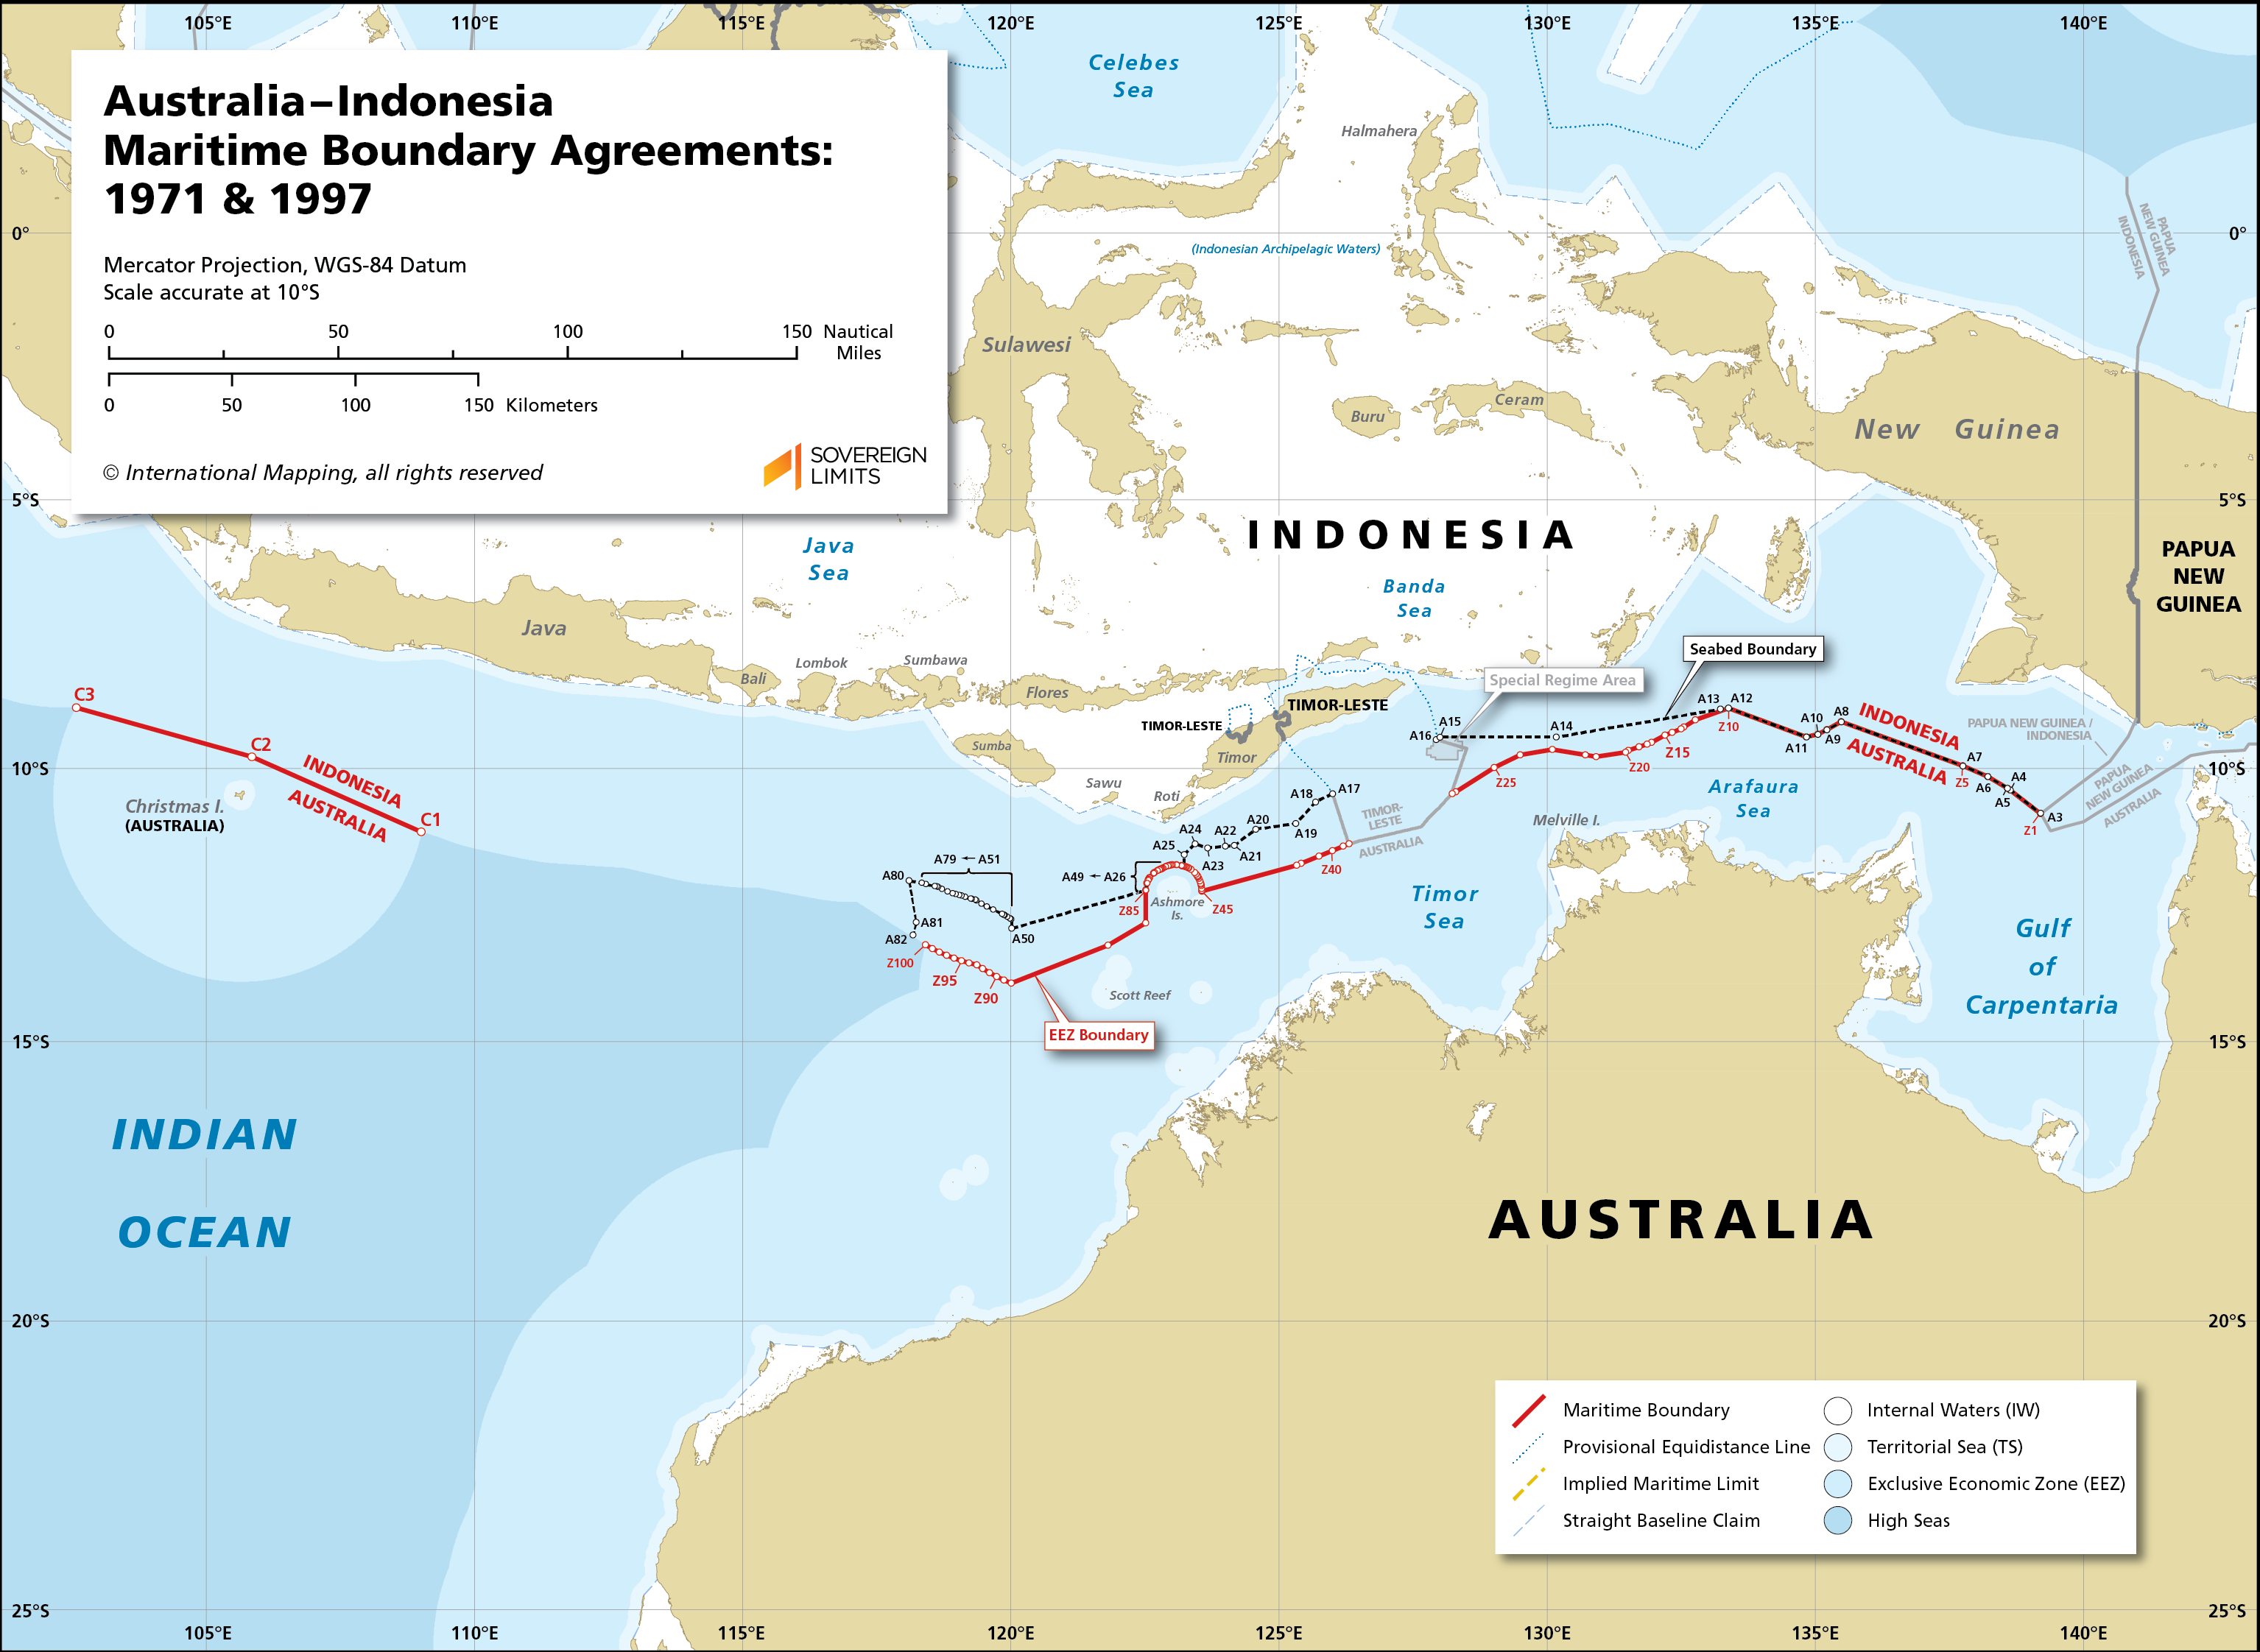 Map showing the maritime boundary between Australia and Indonesia